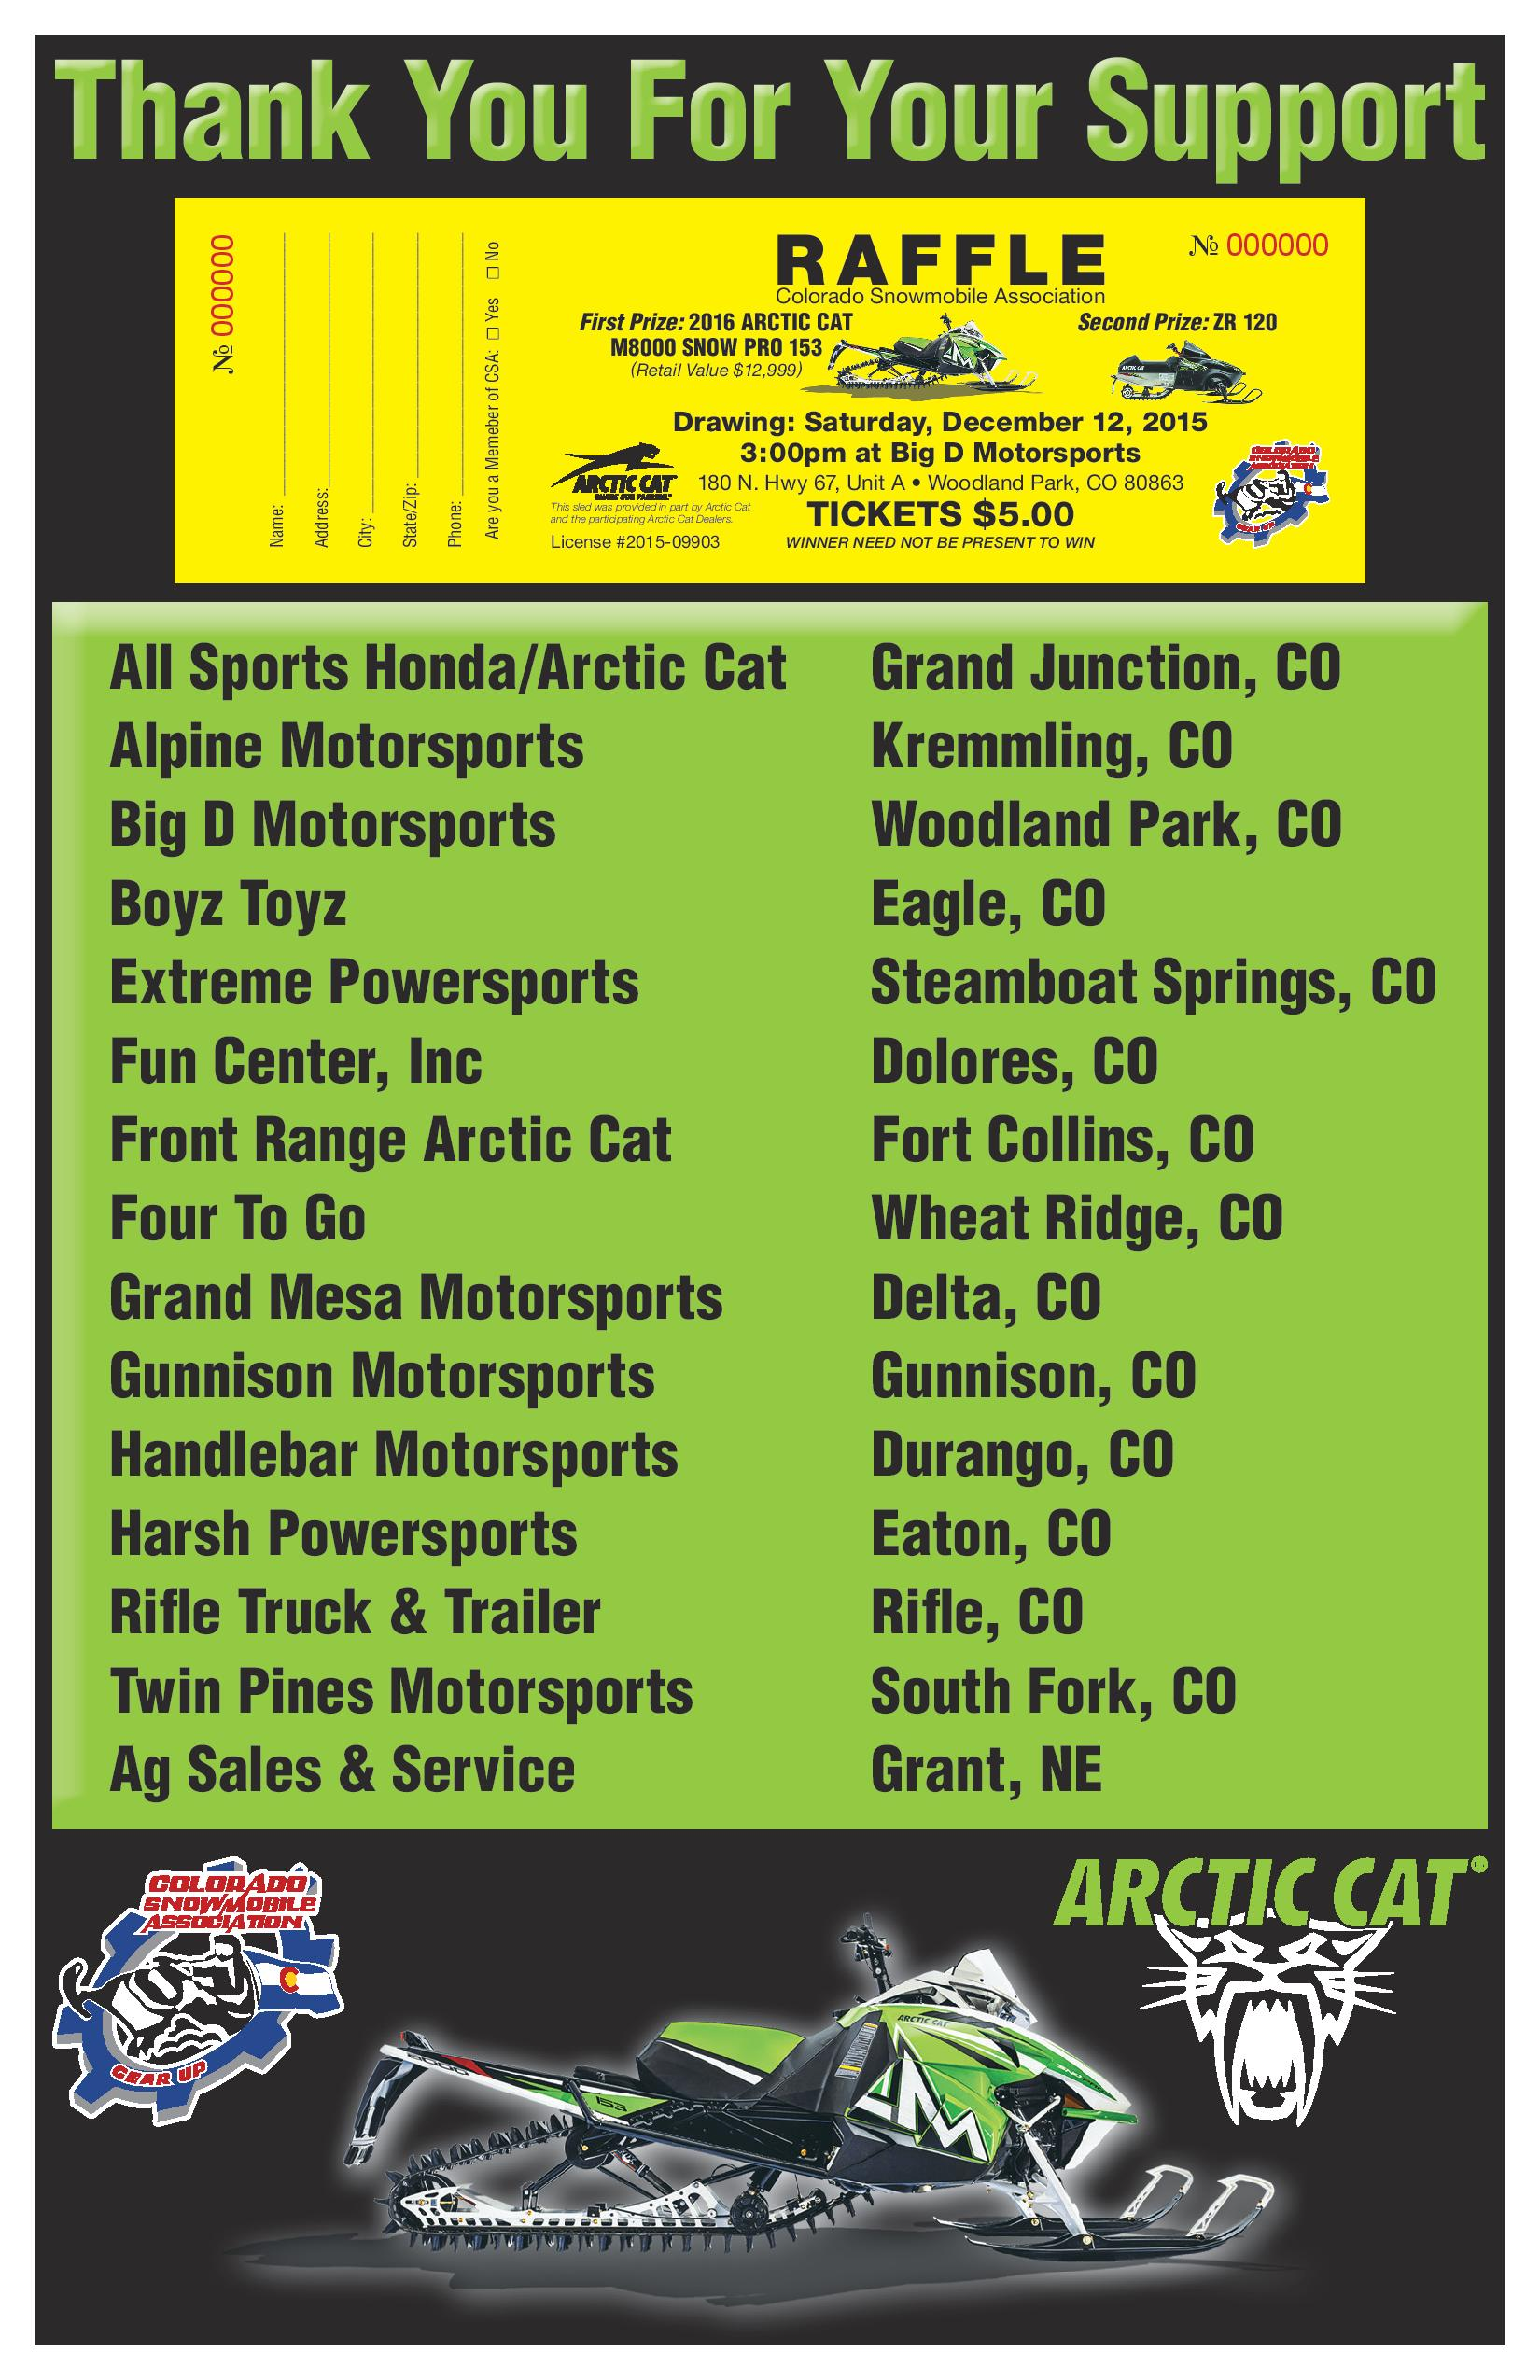 proceeds from raffle benefit colorado snowmobile association and local snowmobile clubs